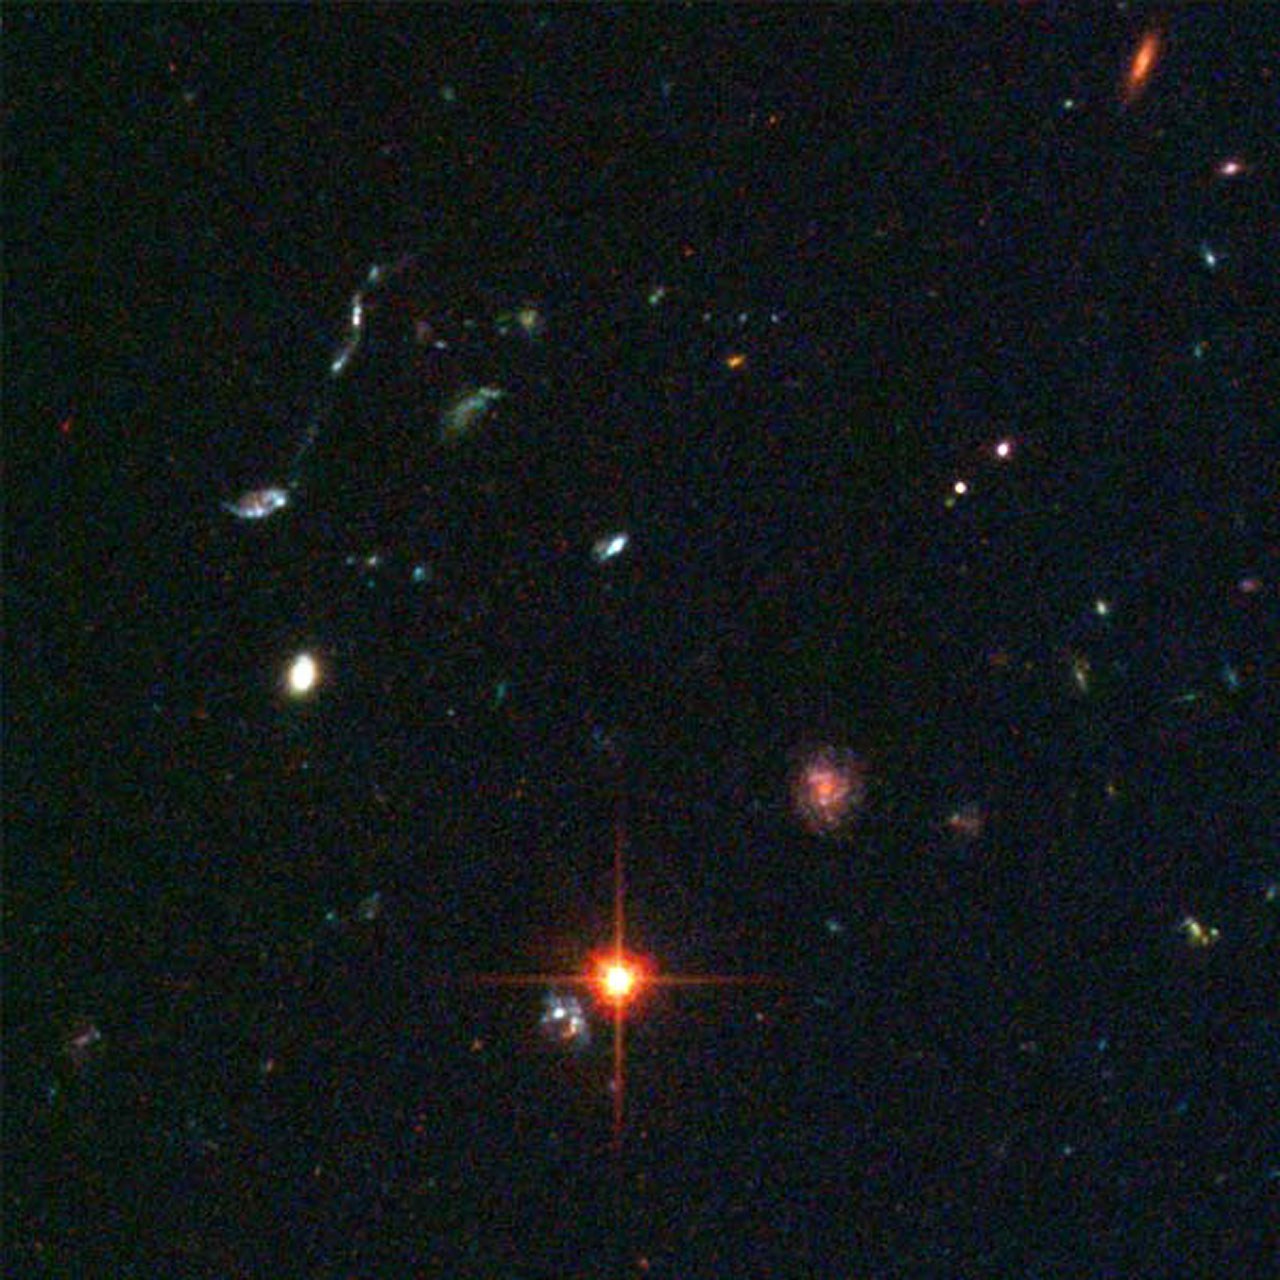 Details from ACS Image of NGC 3370: Lower Middle Right